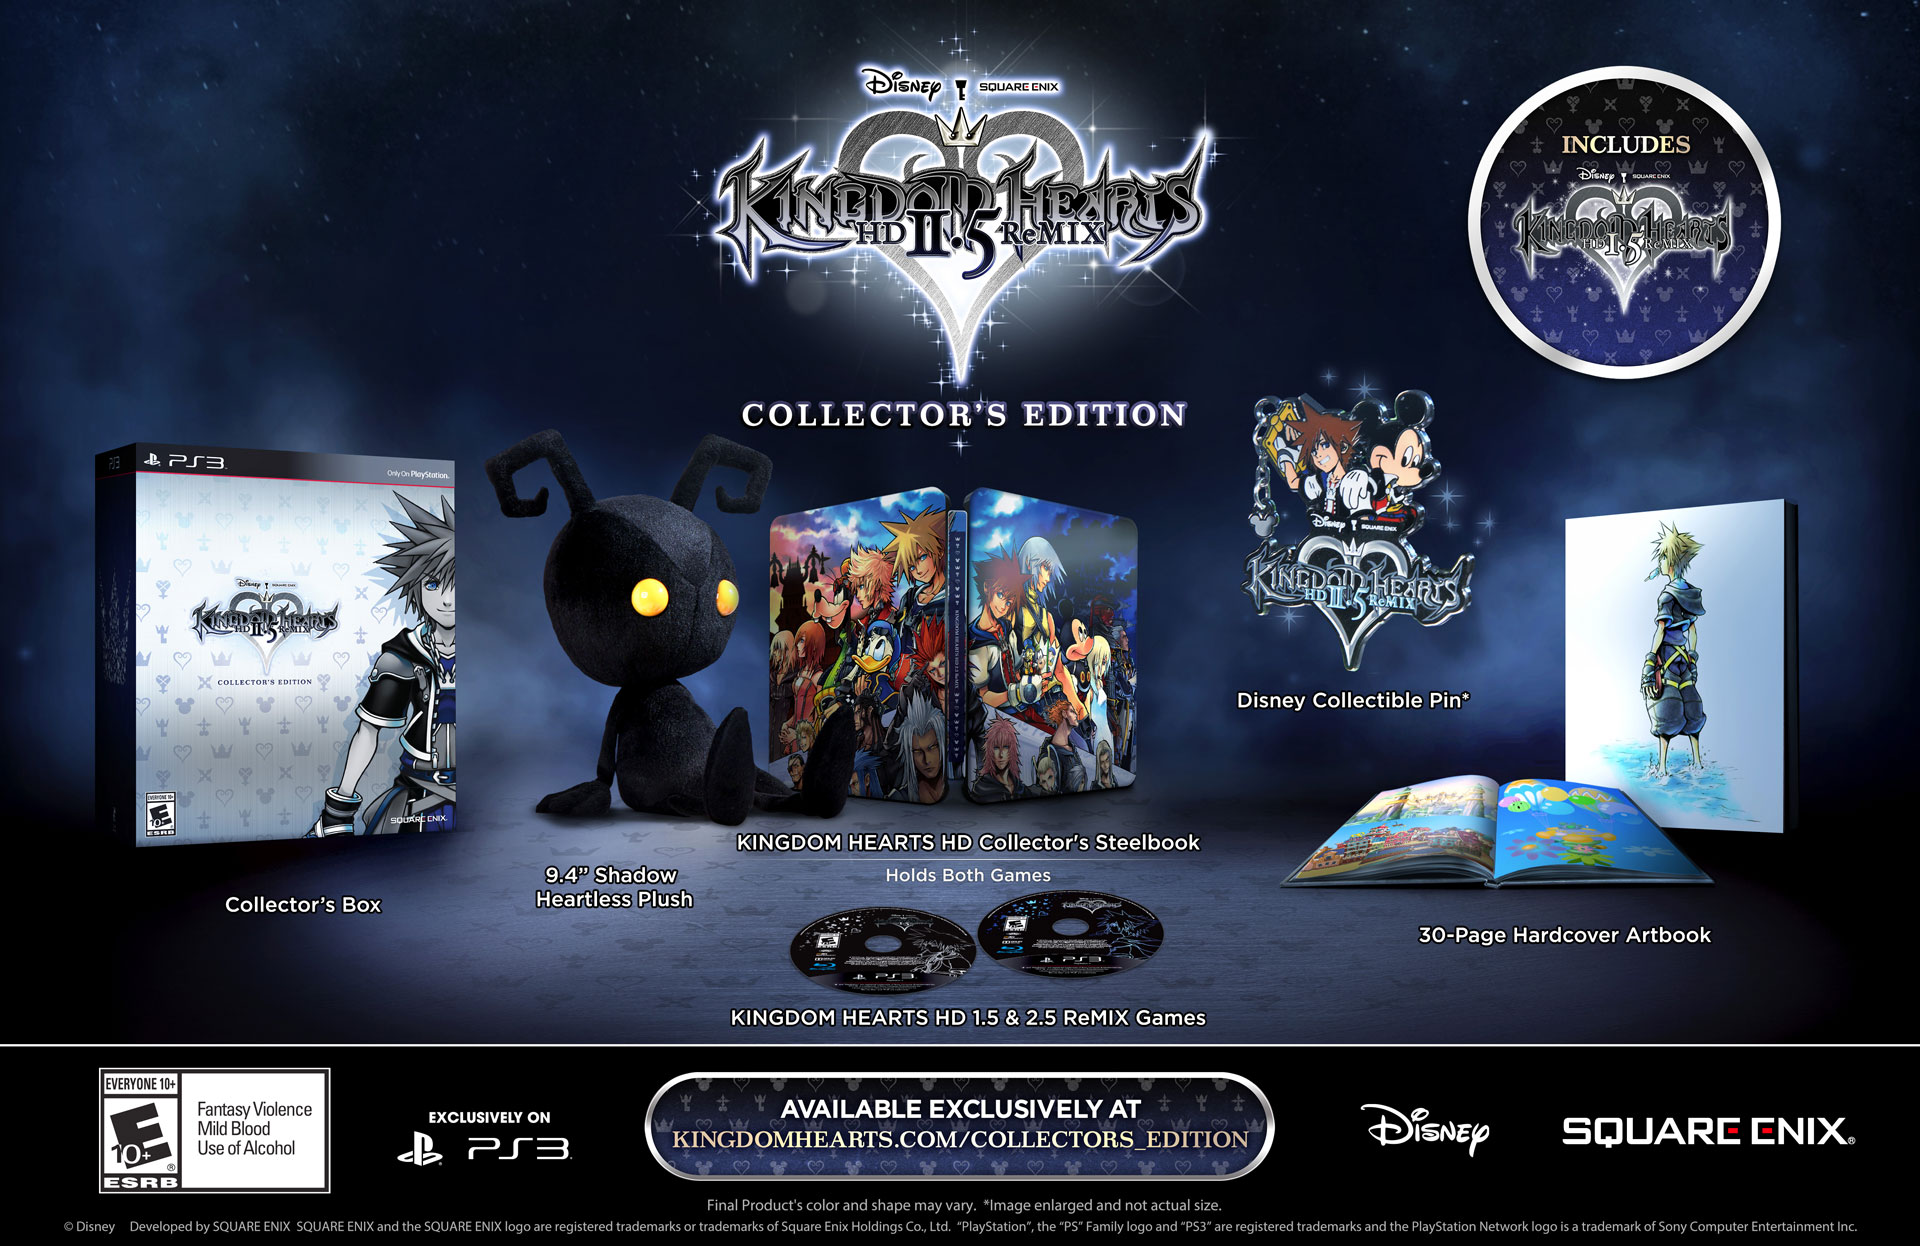 """Kingdom Hearts 2.5 HD Remix Collector's Edition"" Announced - Includes 1.5 & 2.5 HD Remixes"